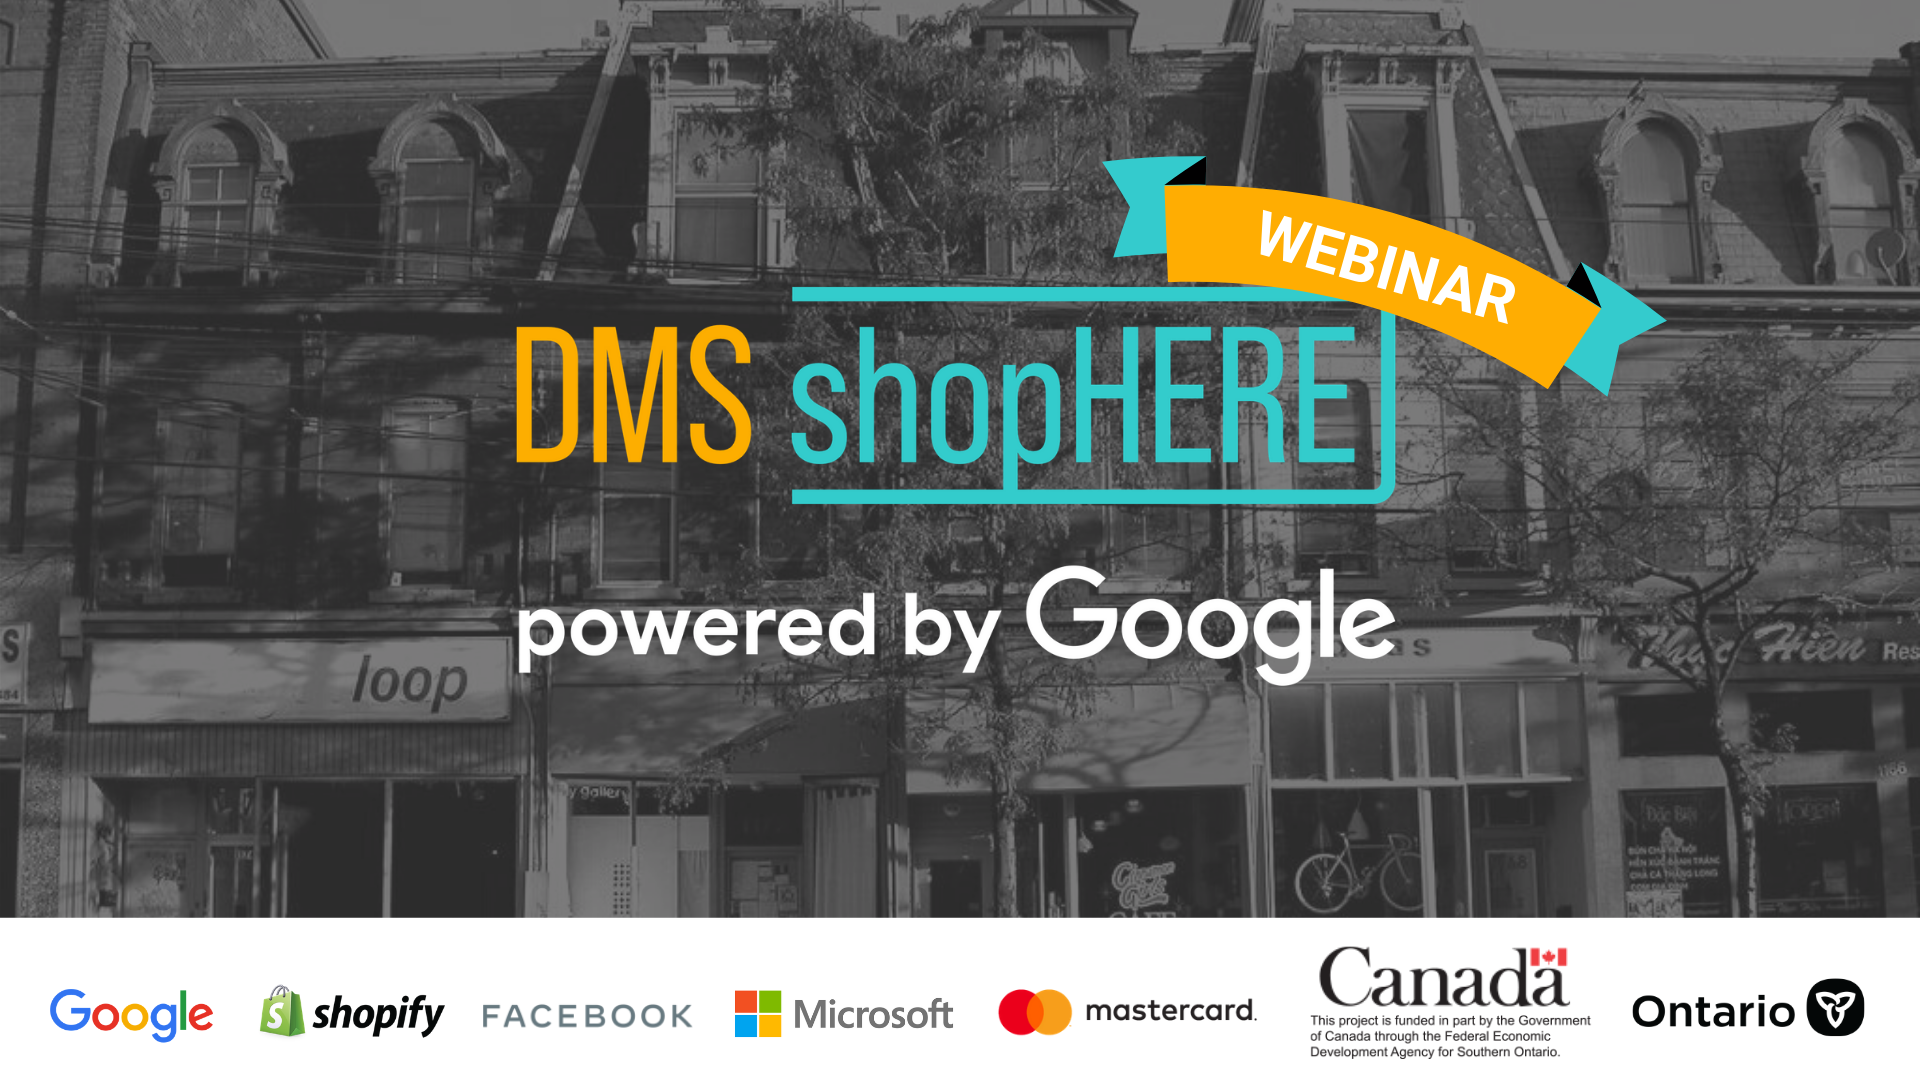 shophere weekly webinar for ecommerce businesses and artists in ontrario